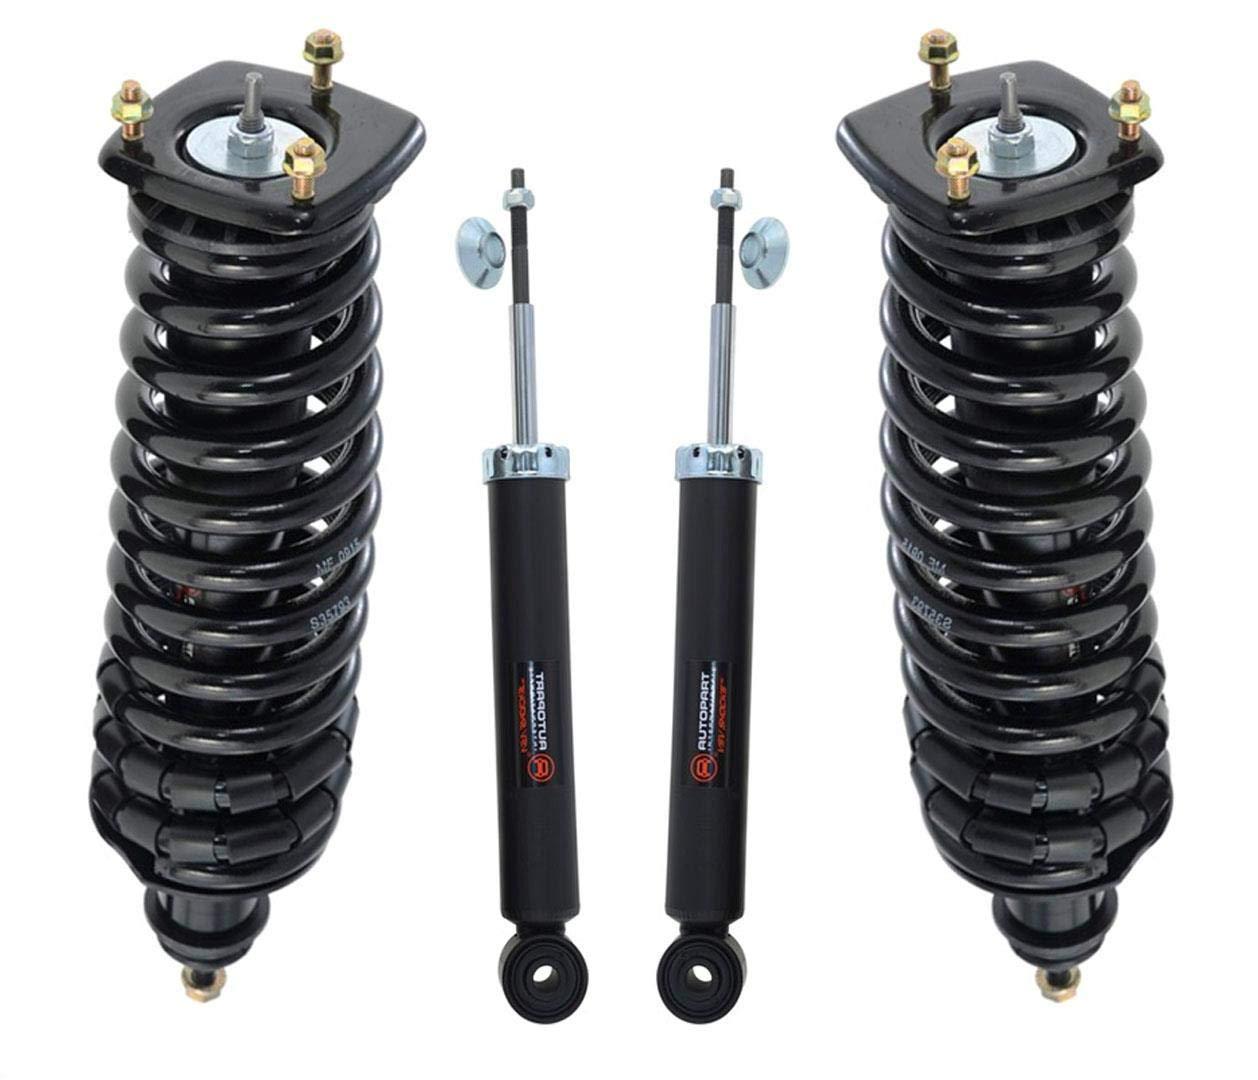 Fits ML320 ML350 ML430 ML500 ML55 Without Spare Tire Rr Loaded Spring Struts With Front Shocks